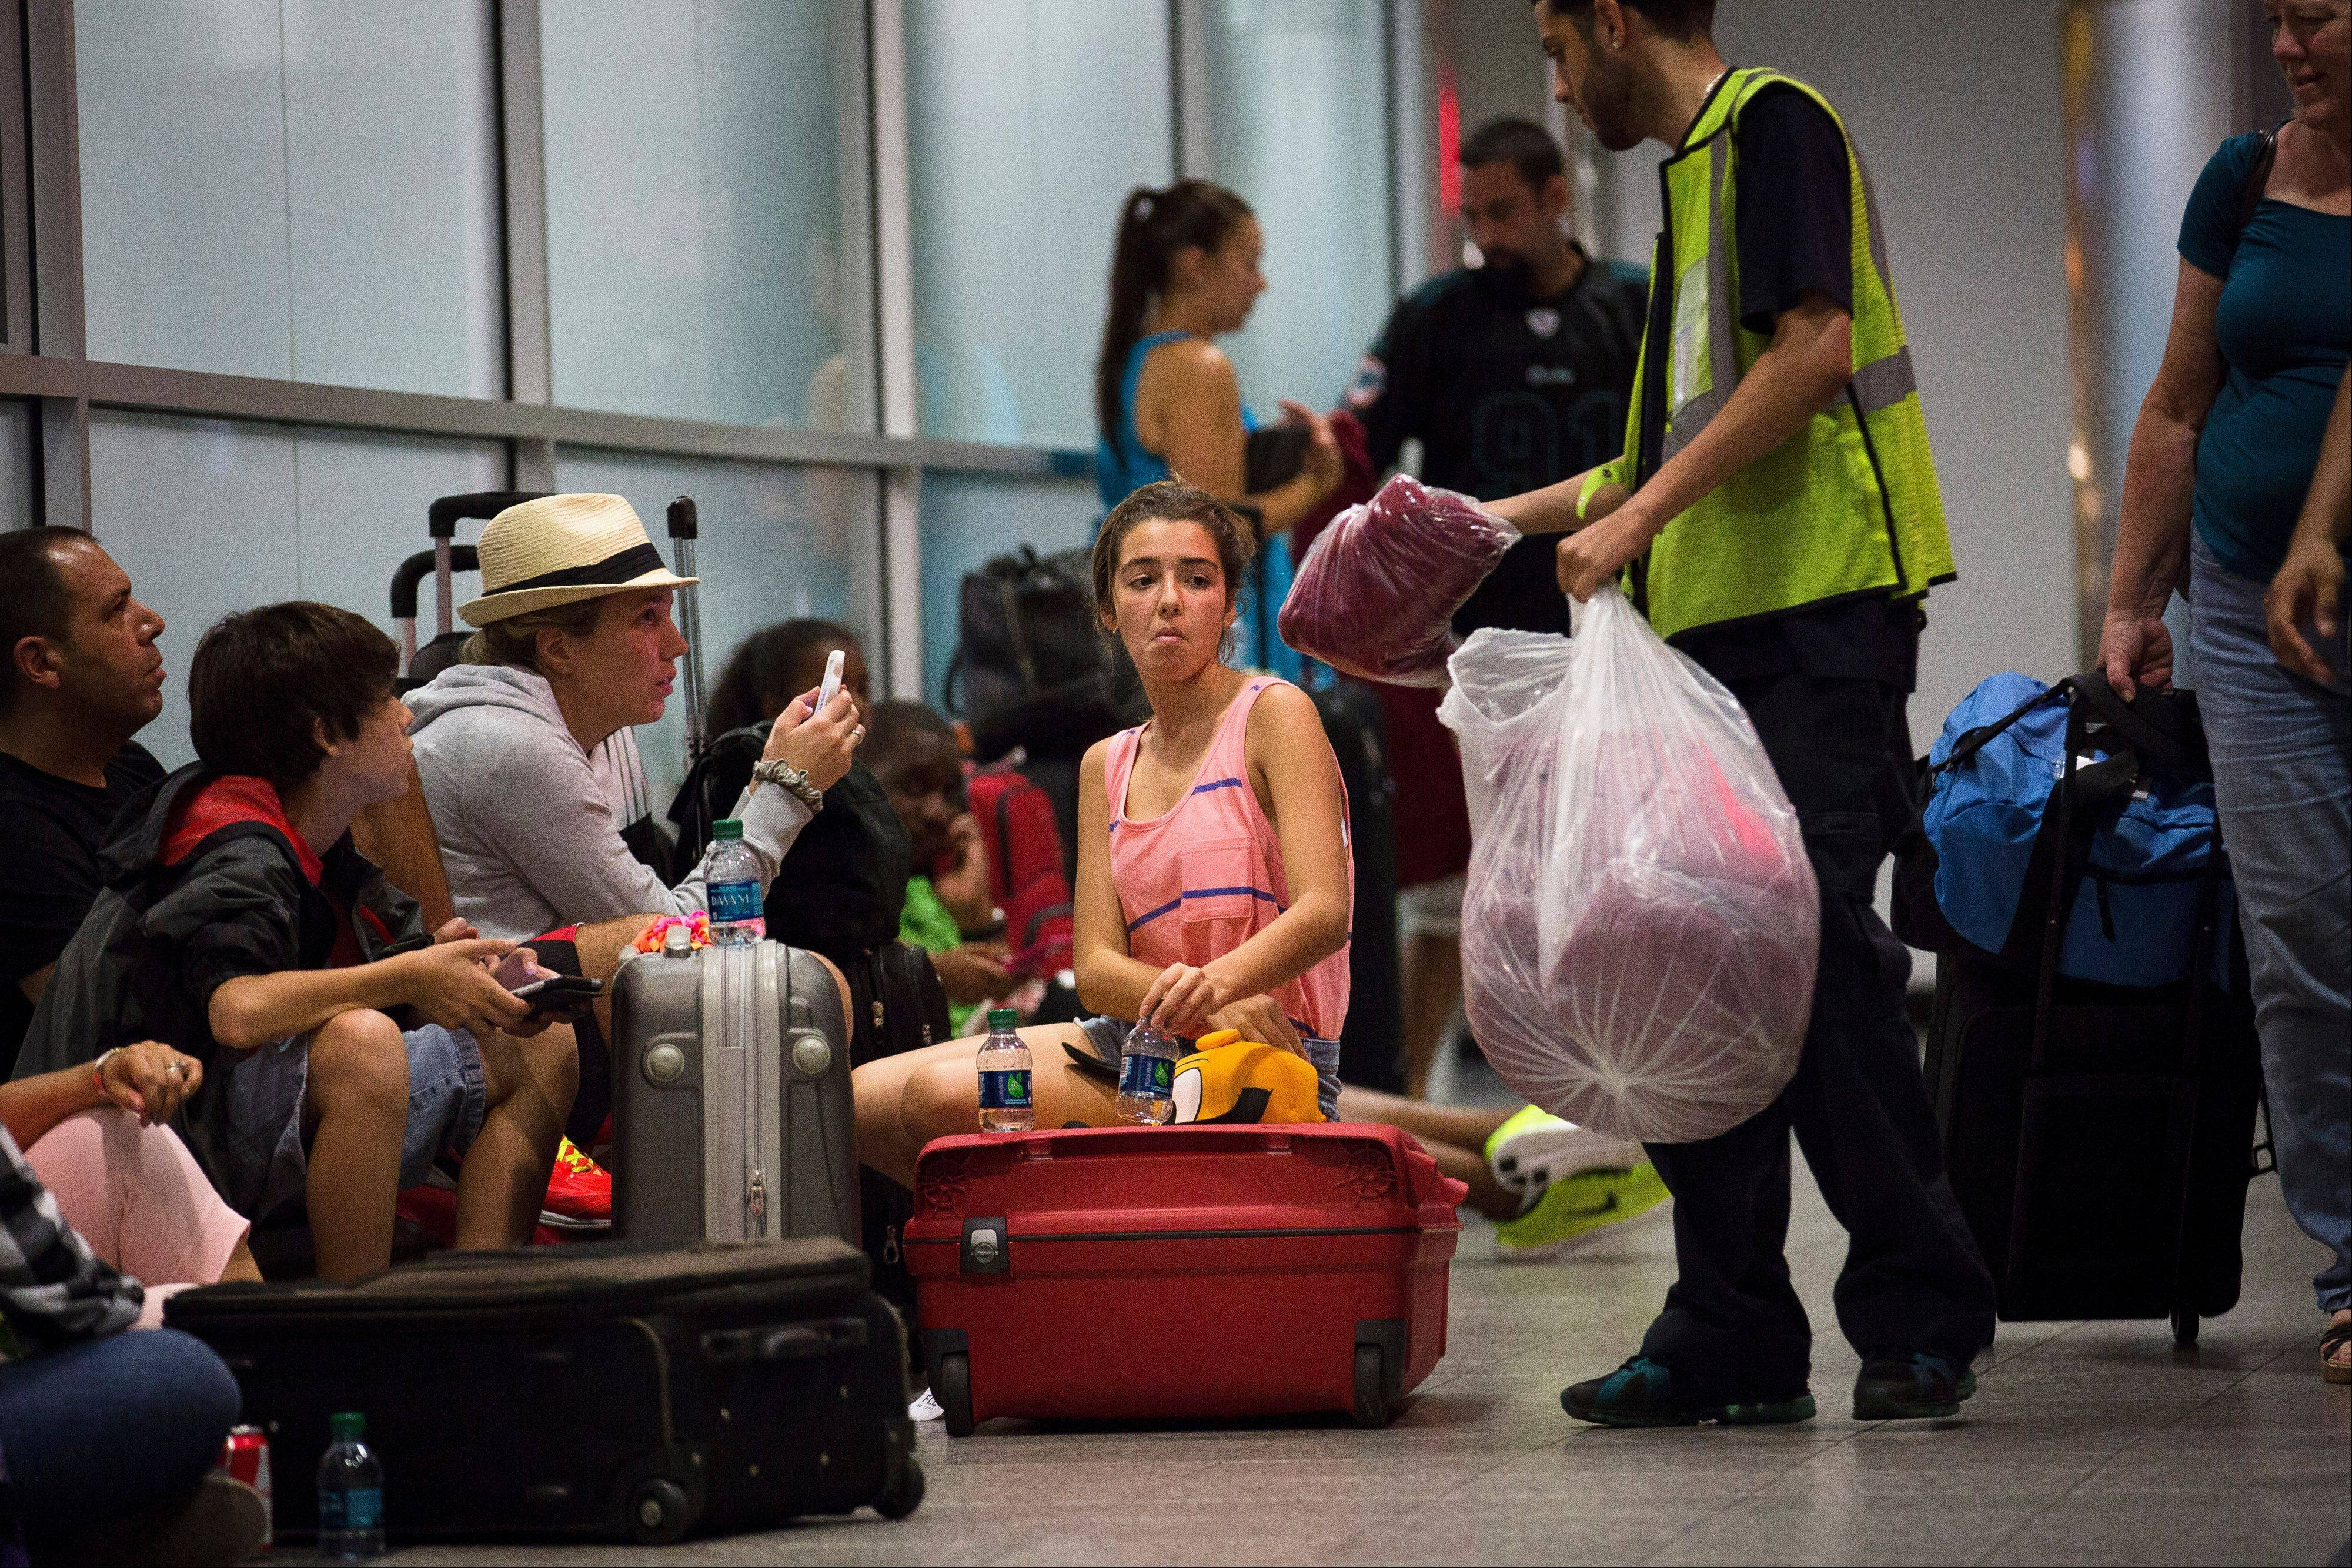 Stranded passengers are handed blankets while they wait at LaGuardia Airport as multiple flights were canceled after a Southwest Airlines 737 plane�s nose gear collapsed during a landing, Monday, July 22, 2013, in New York. The airport fully reopened Tuesday